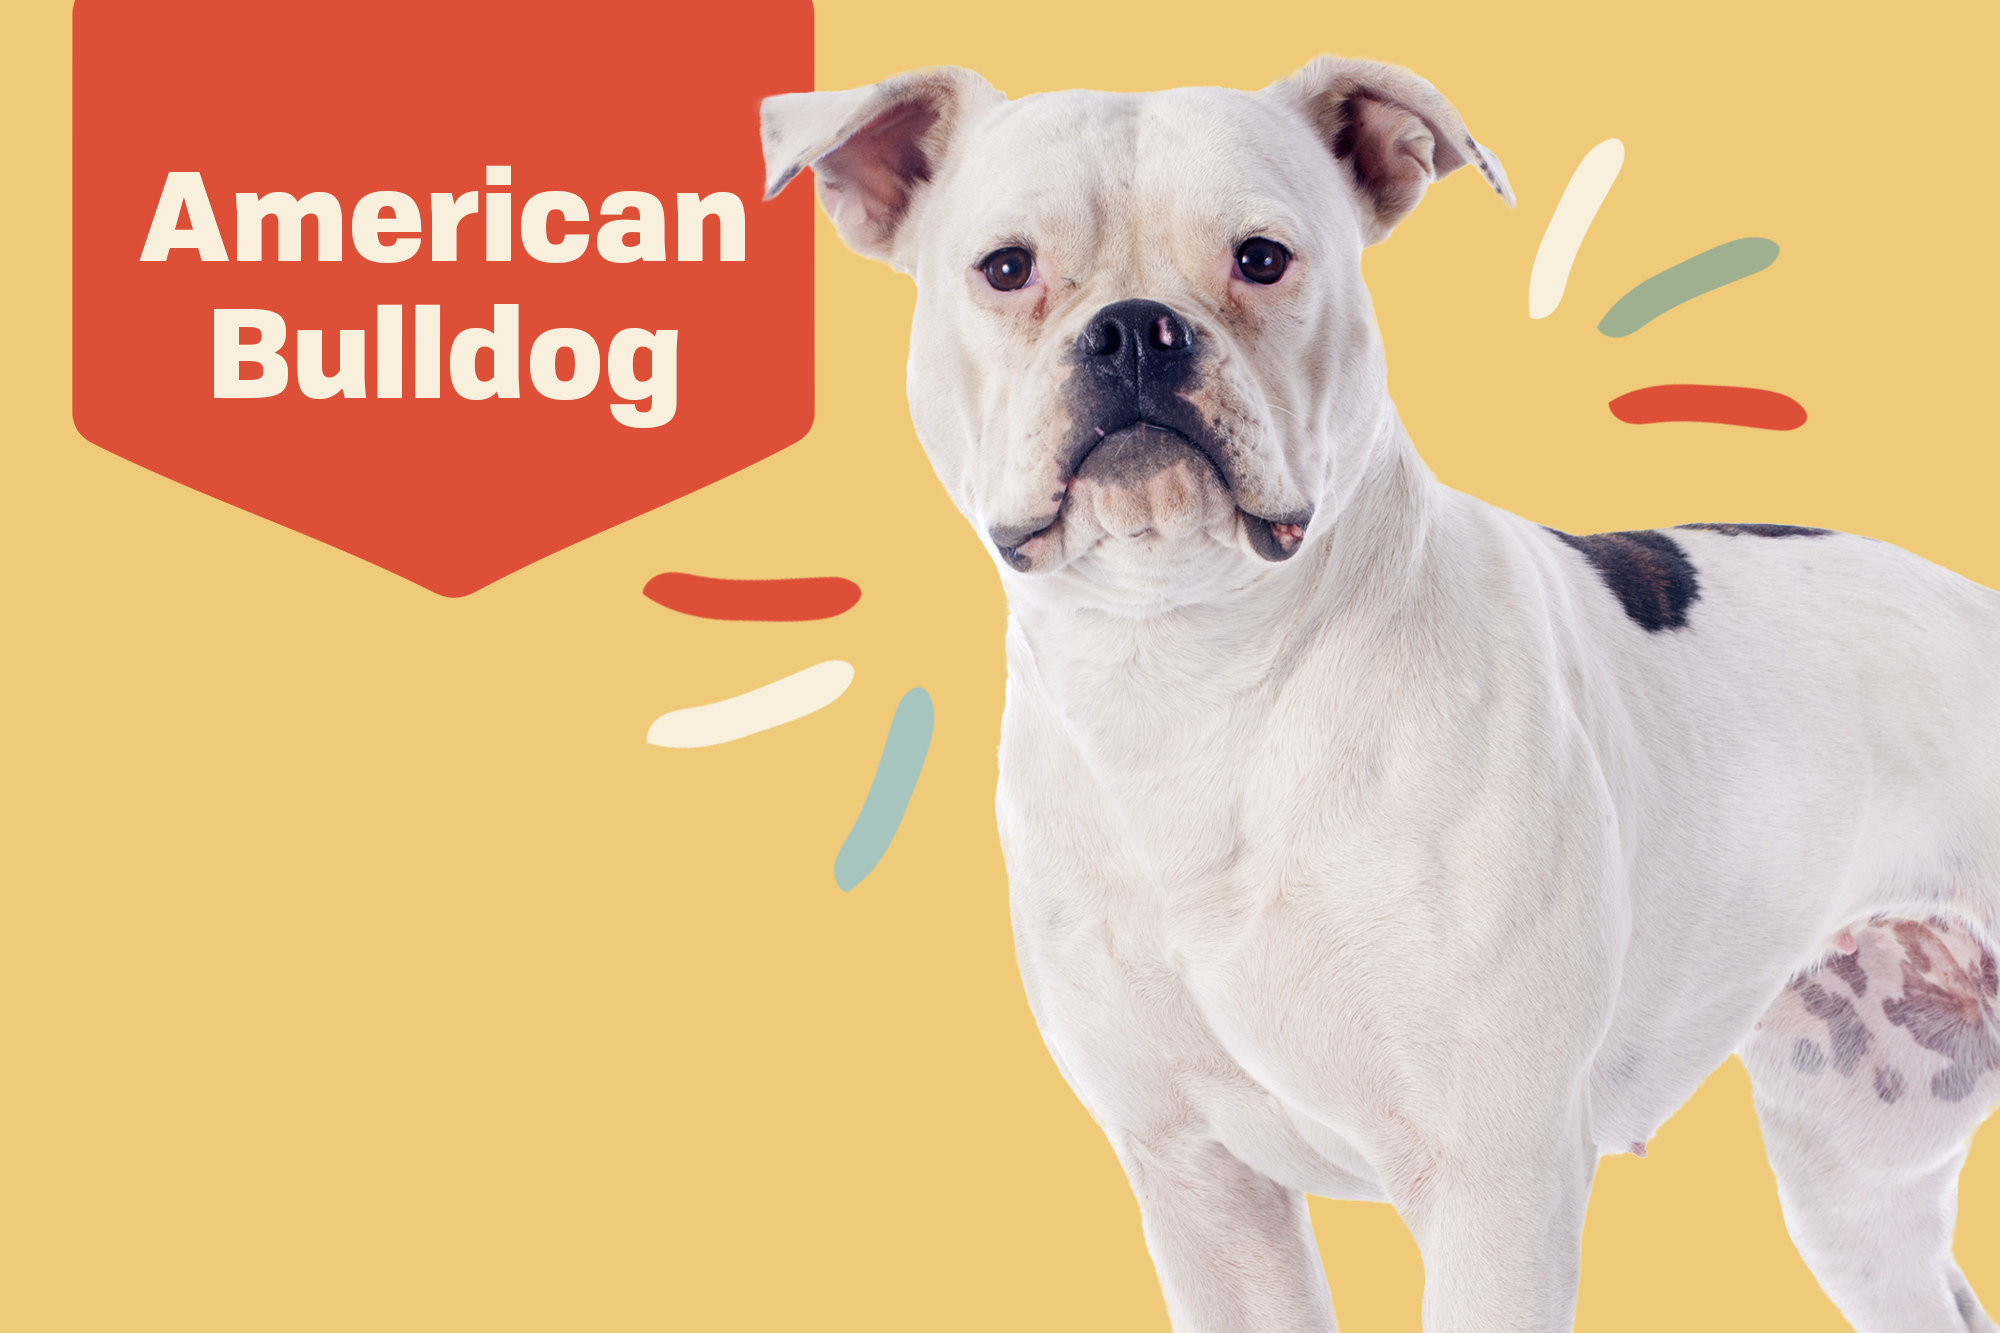 American Bulldog Breed Photo